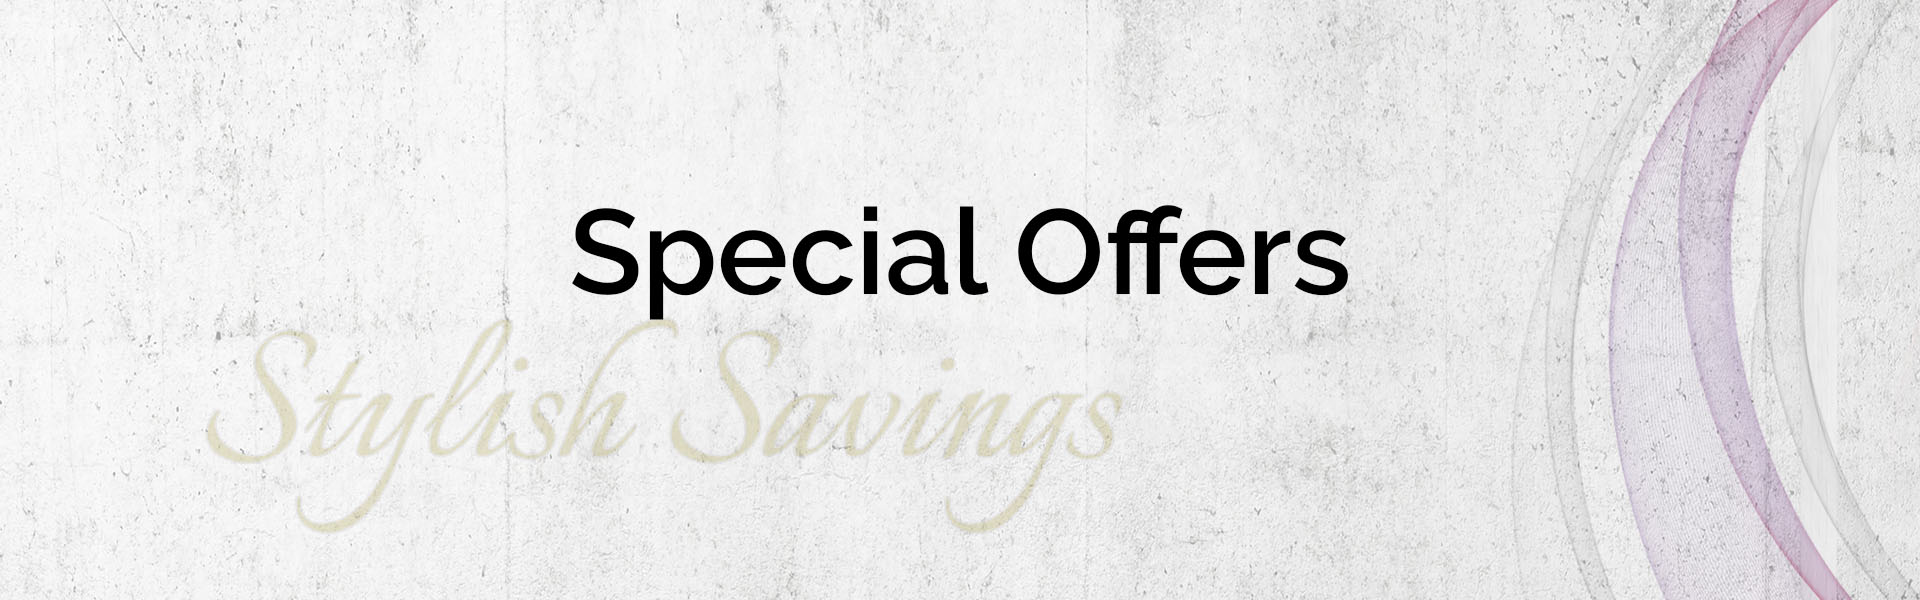 Special-Offers-banner-ad-1920x600